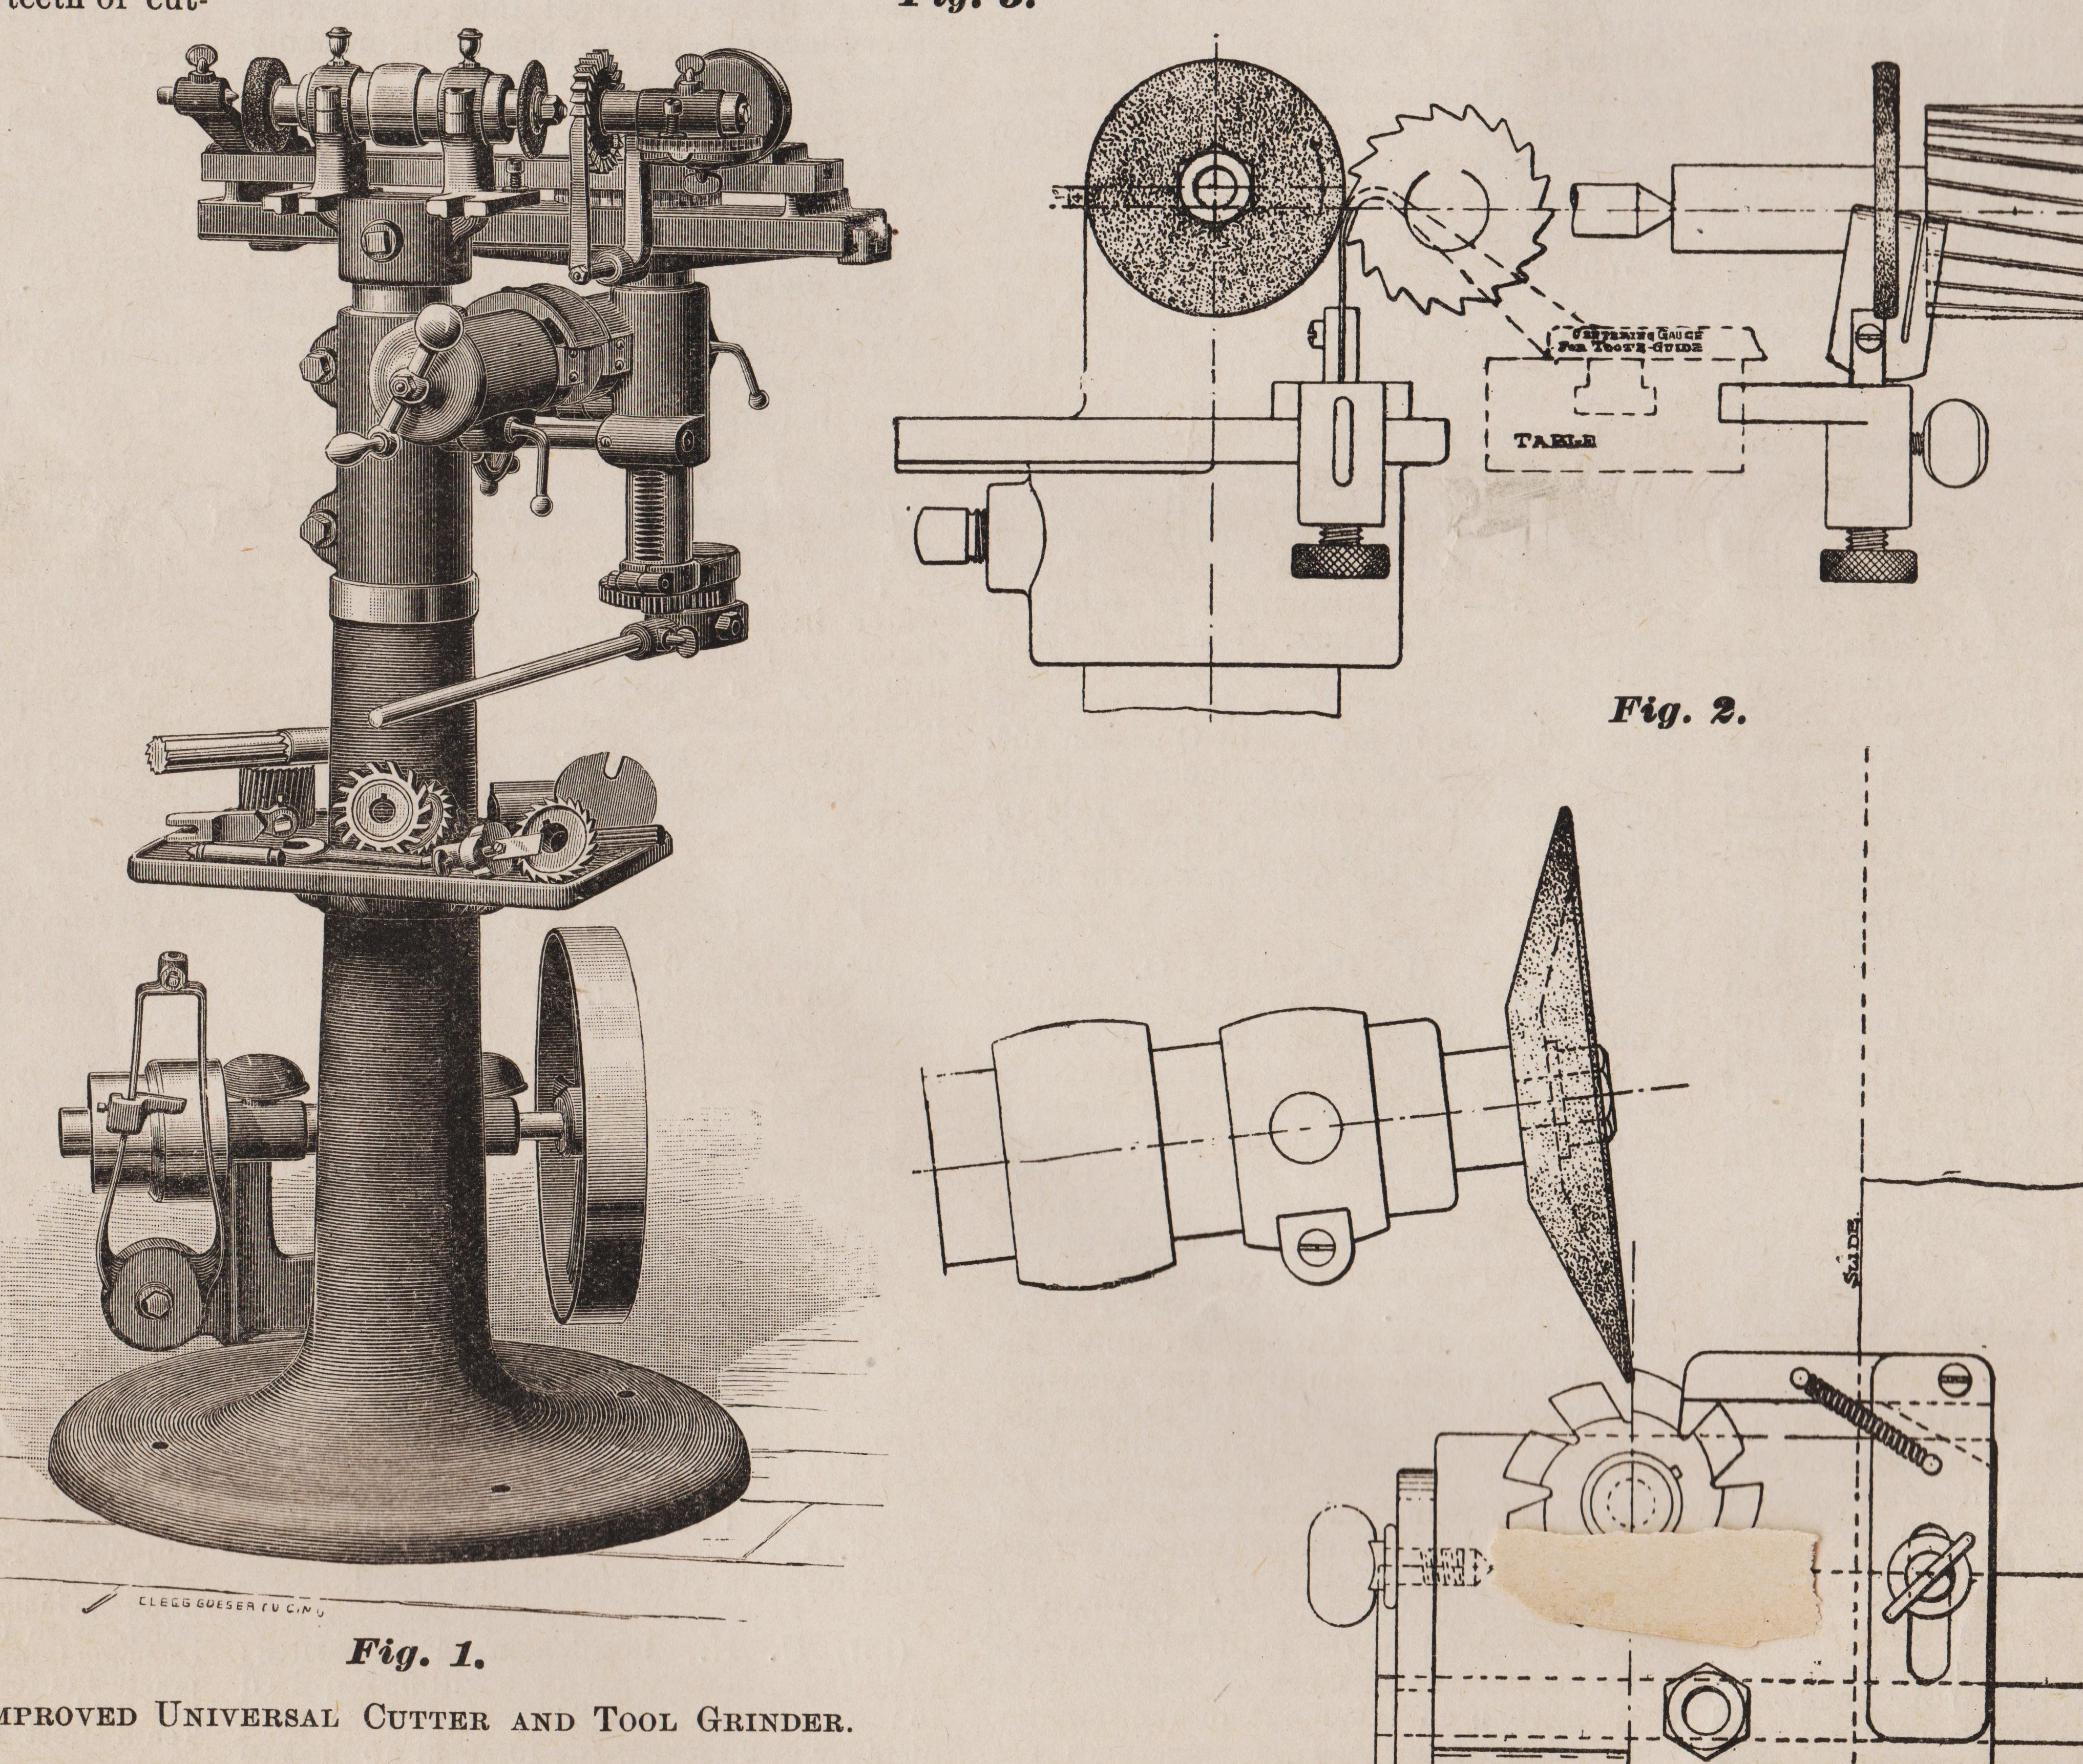 https://antiquemachinery.com/images-2020/Cincinnatti-Milling-MachineTool-Co-OHIO-Universal-Cutter-and-Tool-Grinder-American_Machinist-1894.jpg